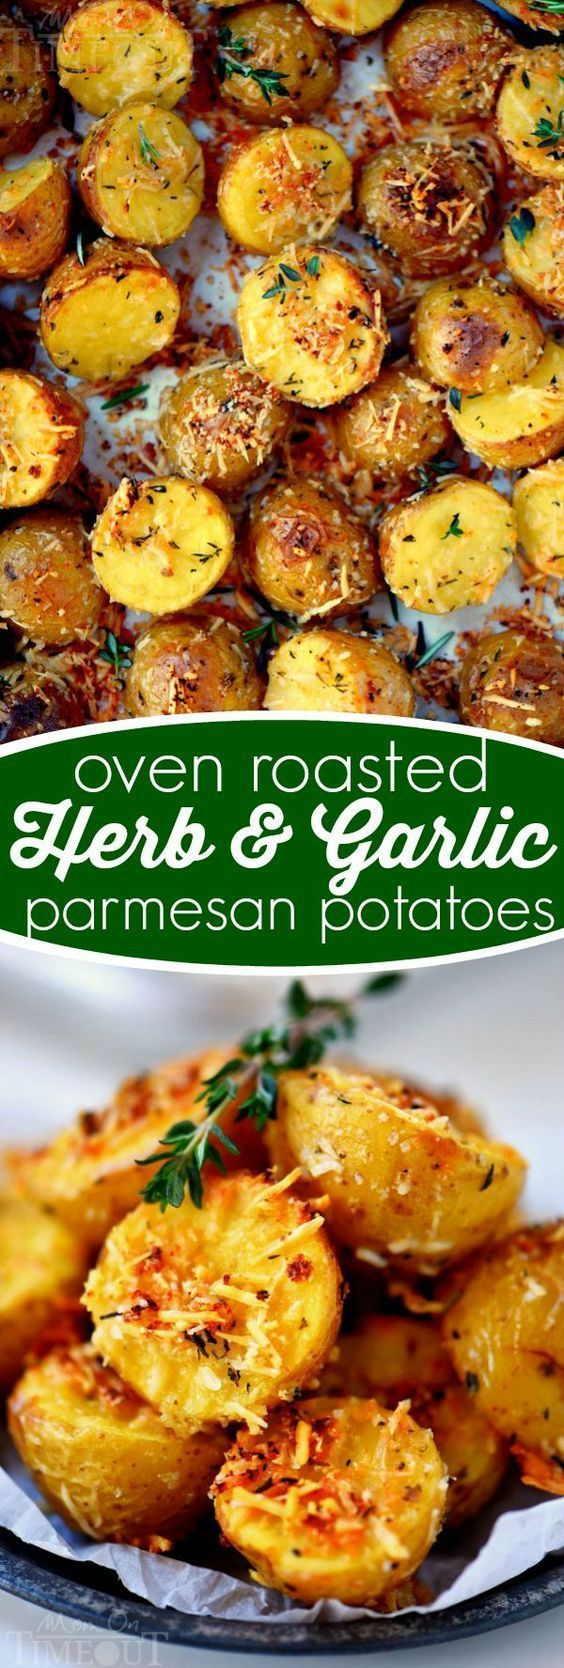 These Oven Roasted Herb and Garlic Parmesan Potatoes are the perfect side dish to whatever you're making for dinner tonight! Perfectly crispy on t... - -